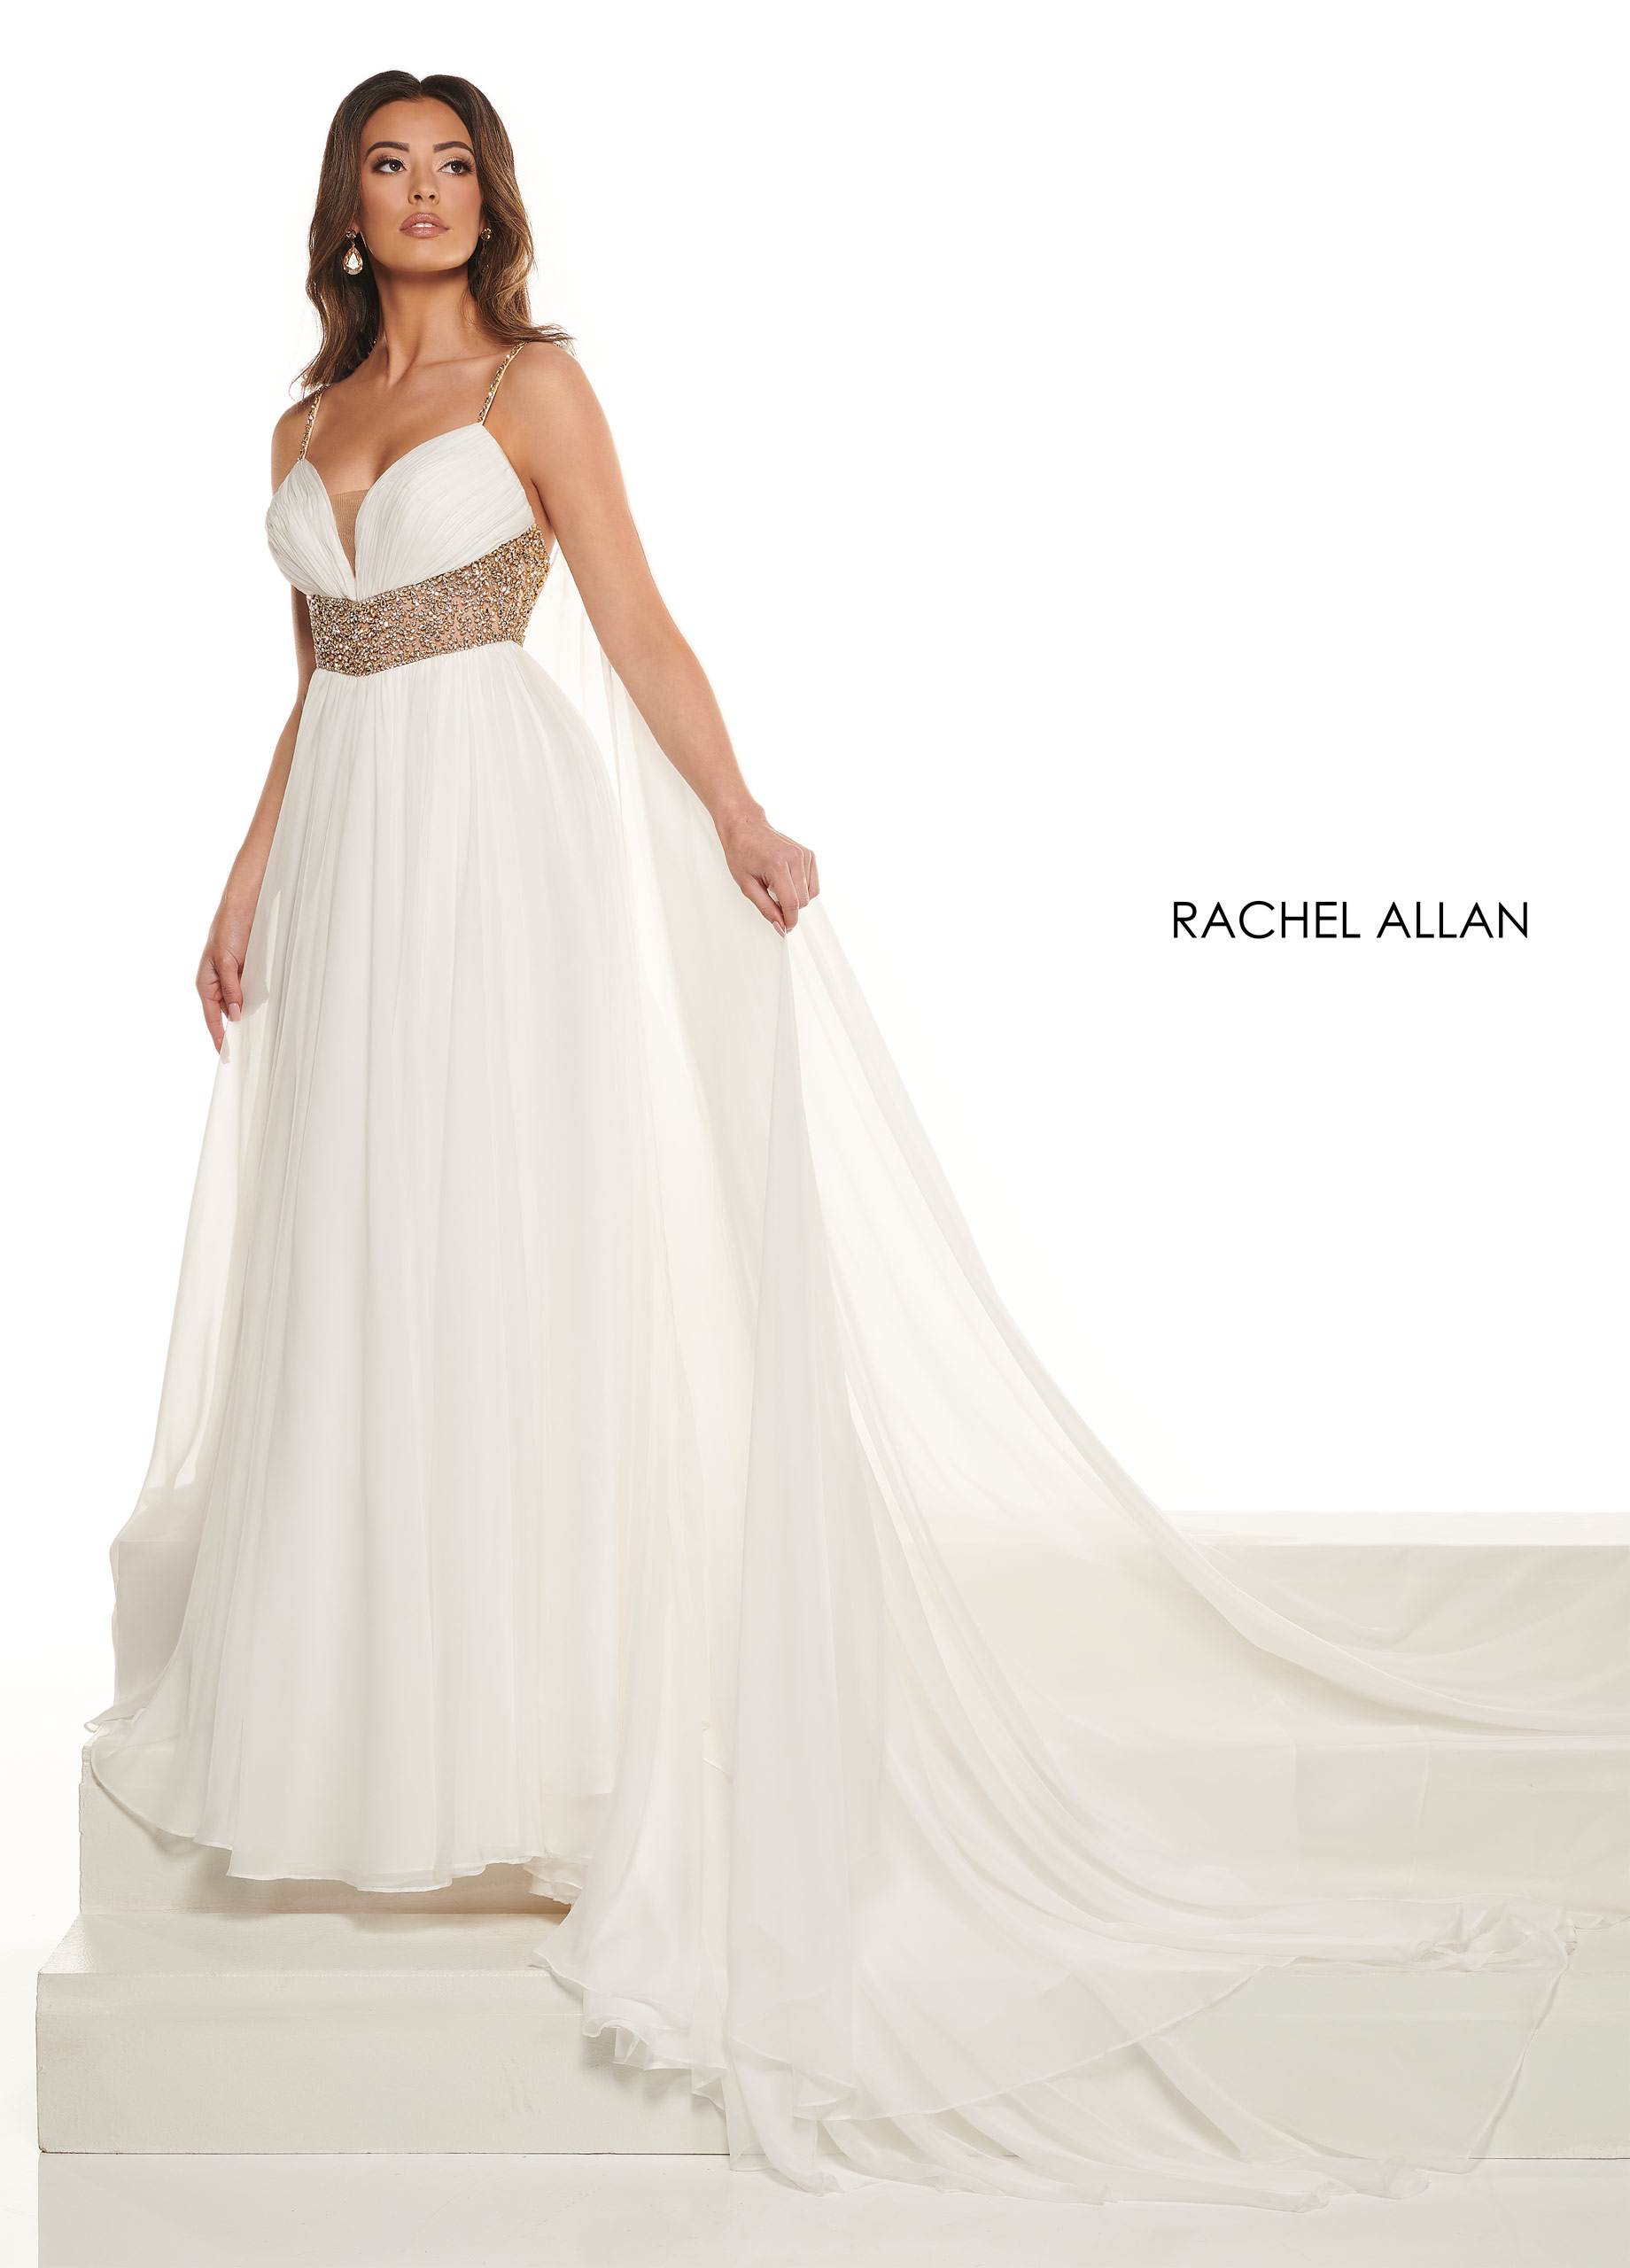 Strappy A-Line Pageant Dresses in White Color